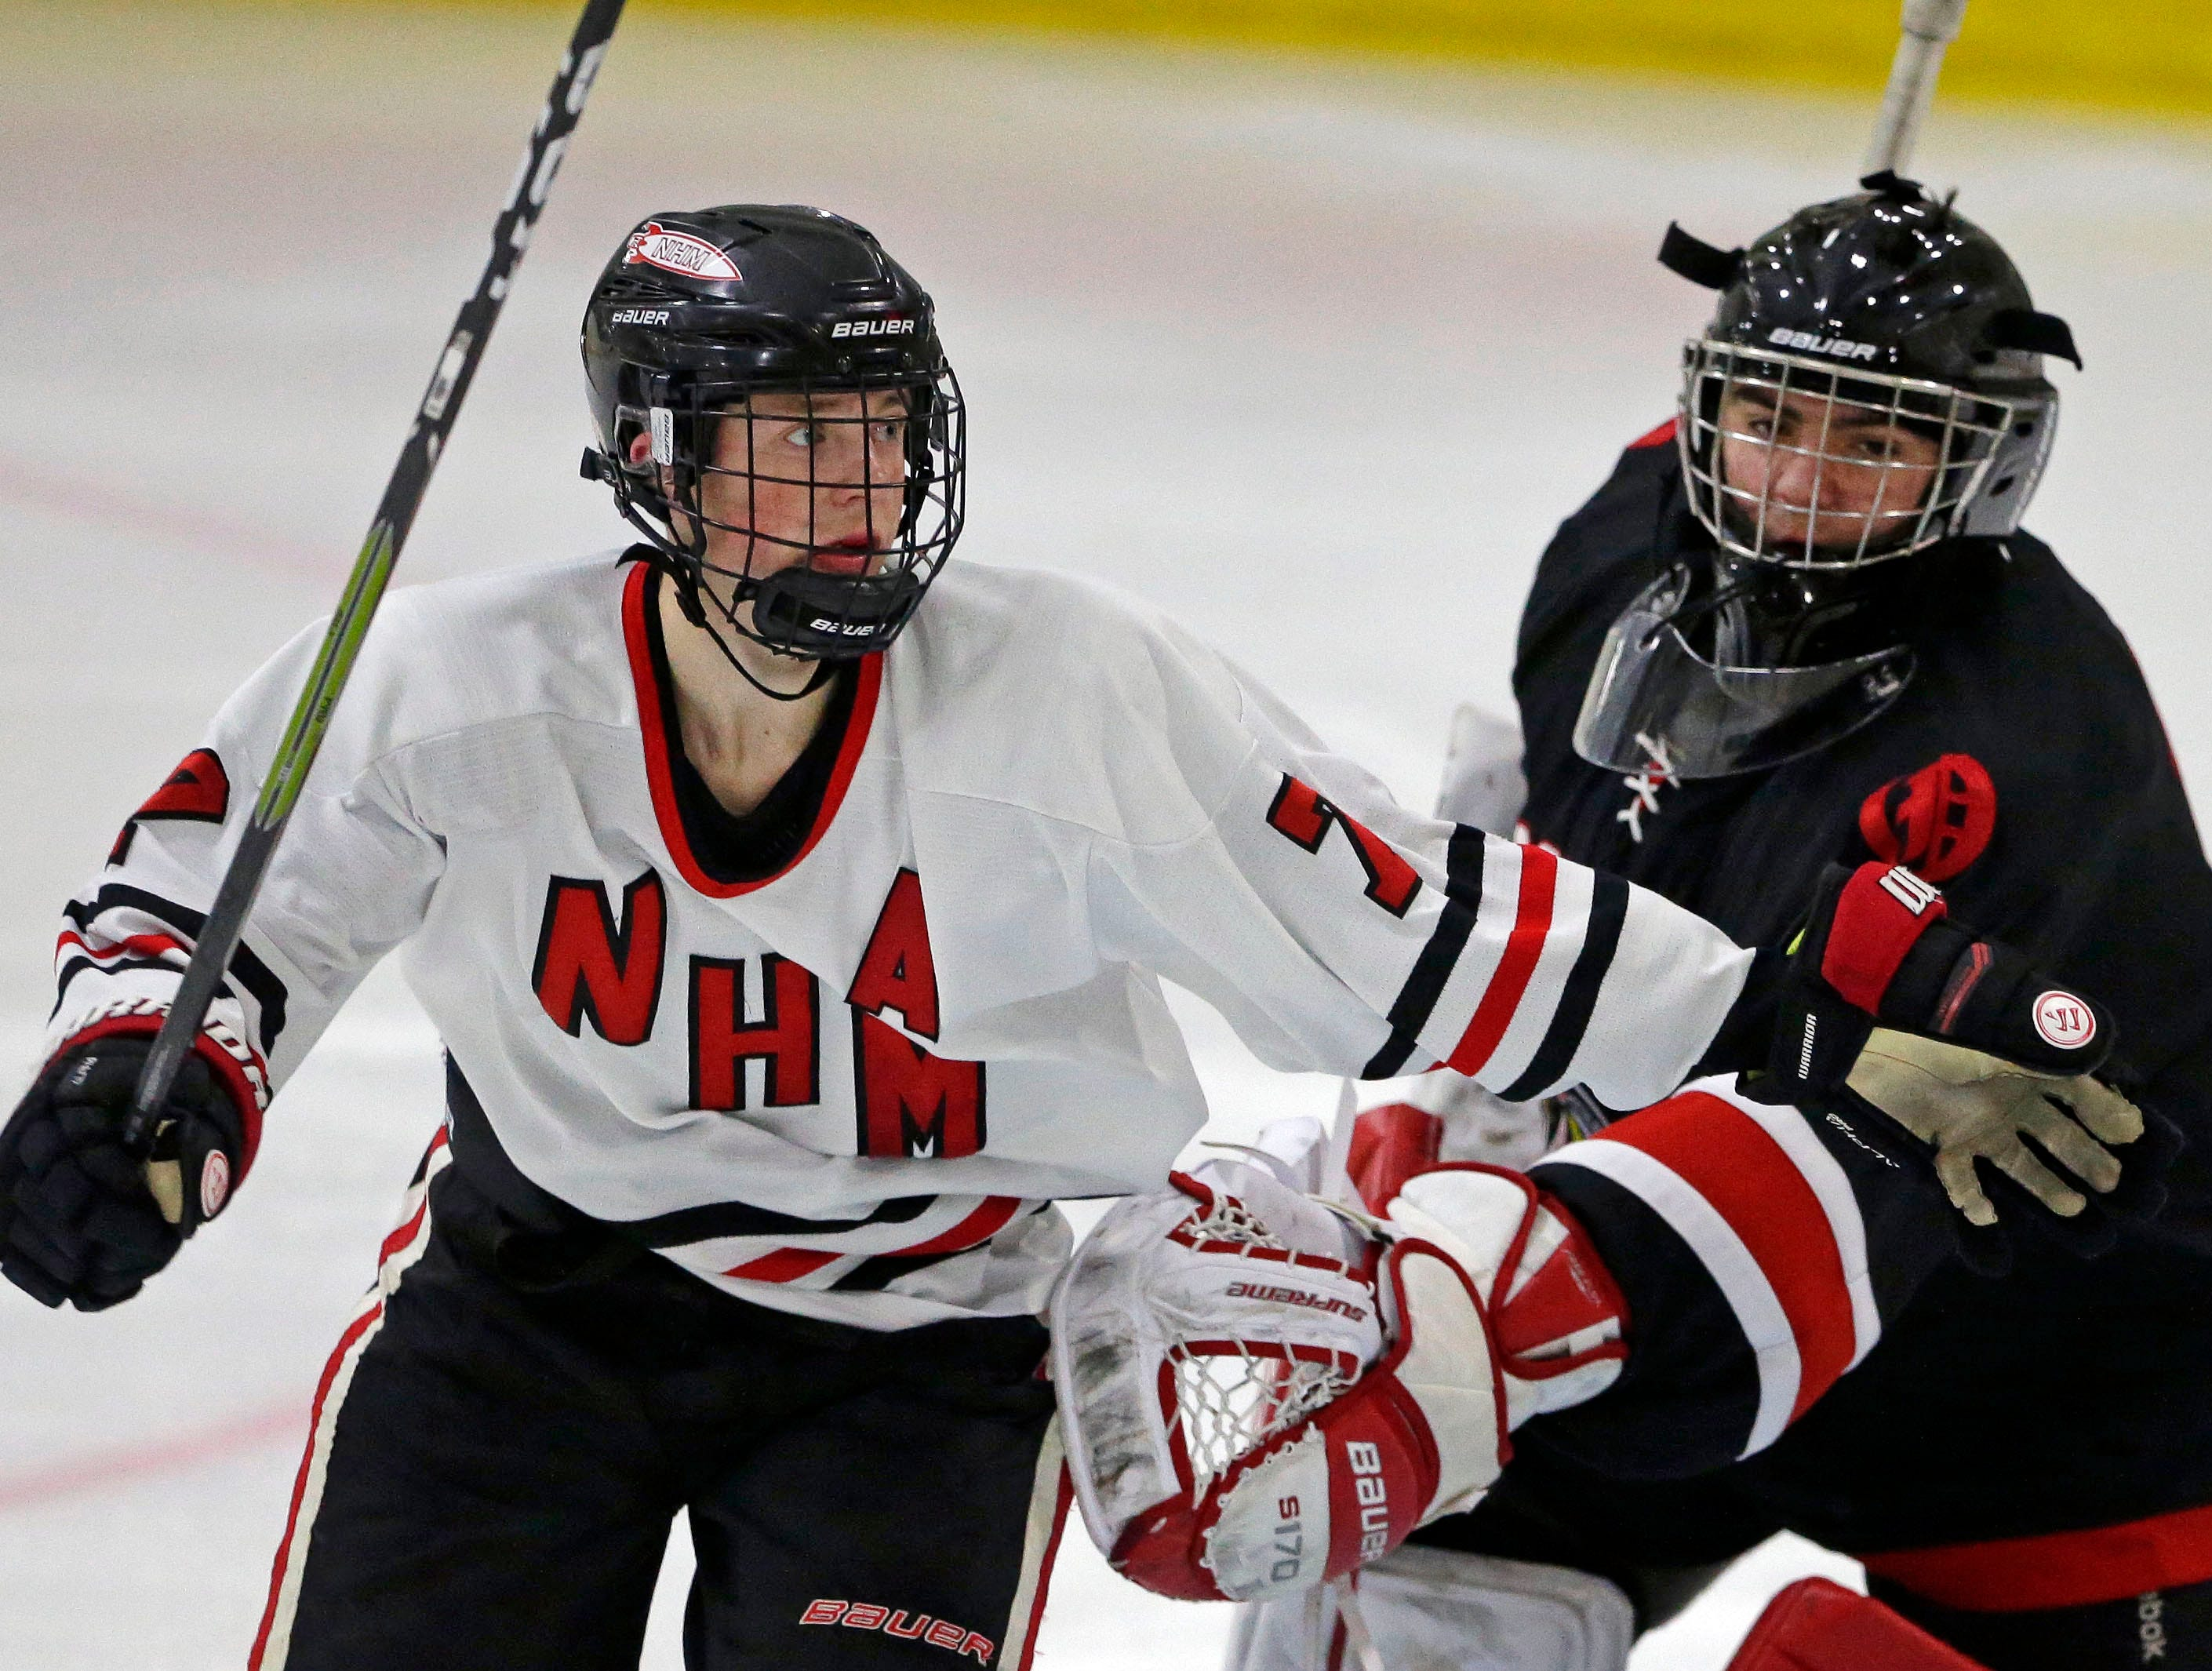 Ethan Long of Neenah/Hortonville/Menasha looks for the puck as he gets by Connor Klett of Oshkosh in a Badgerland Conference hockey game Tuesday, December 4, 2018, at Tri-County Ice Arena in Fox Crossing, Wis.Ron Page/USA TODAY NETWORK-Wisconsin